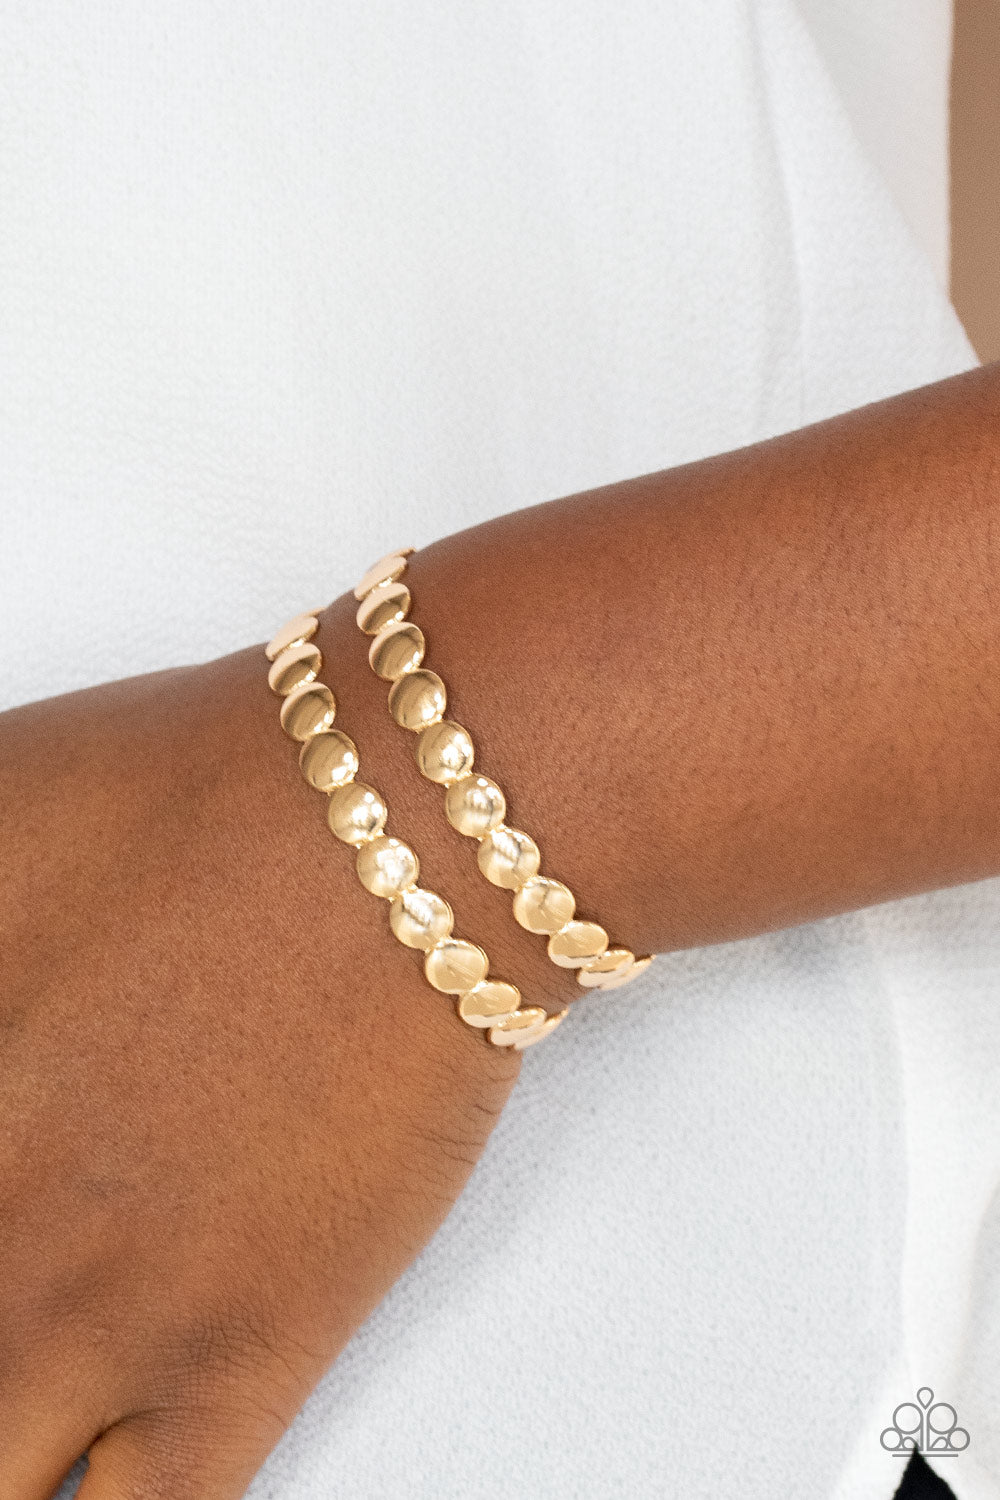 On The Spot Shimmer - Gold Bracelet - Paparazzi Accessories